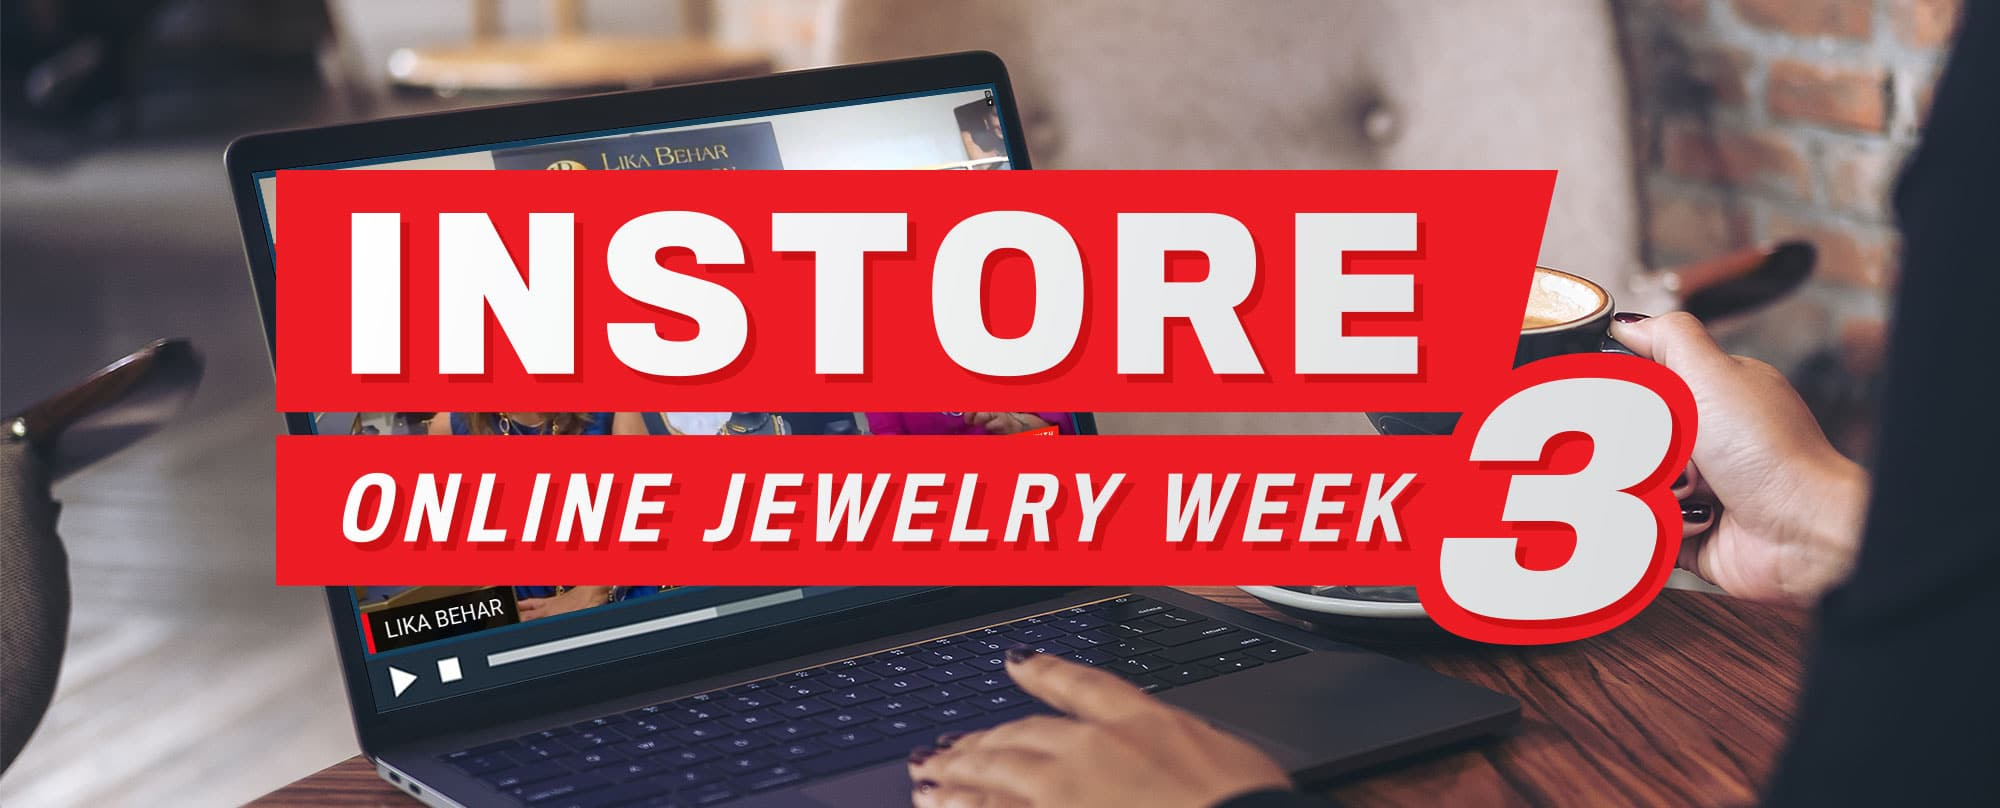 INSTORE Online Jewelry Week 3: Get All the Session Replays Here!